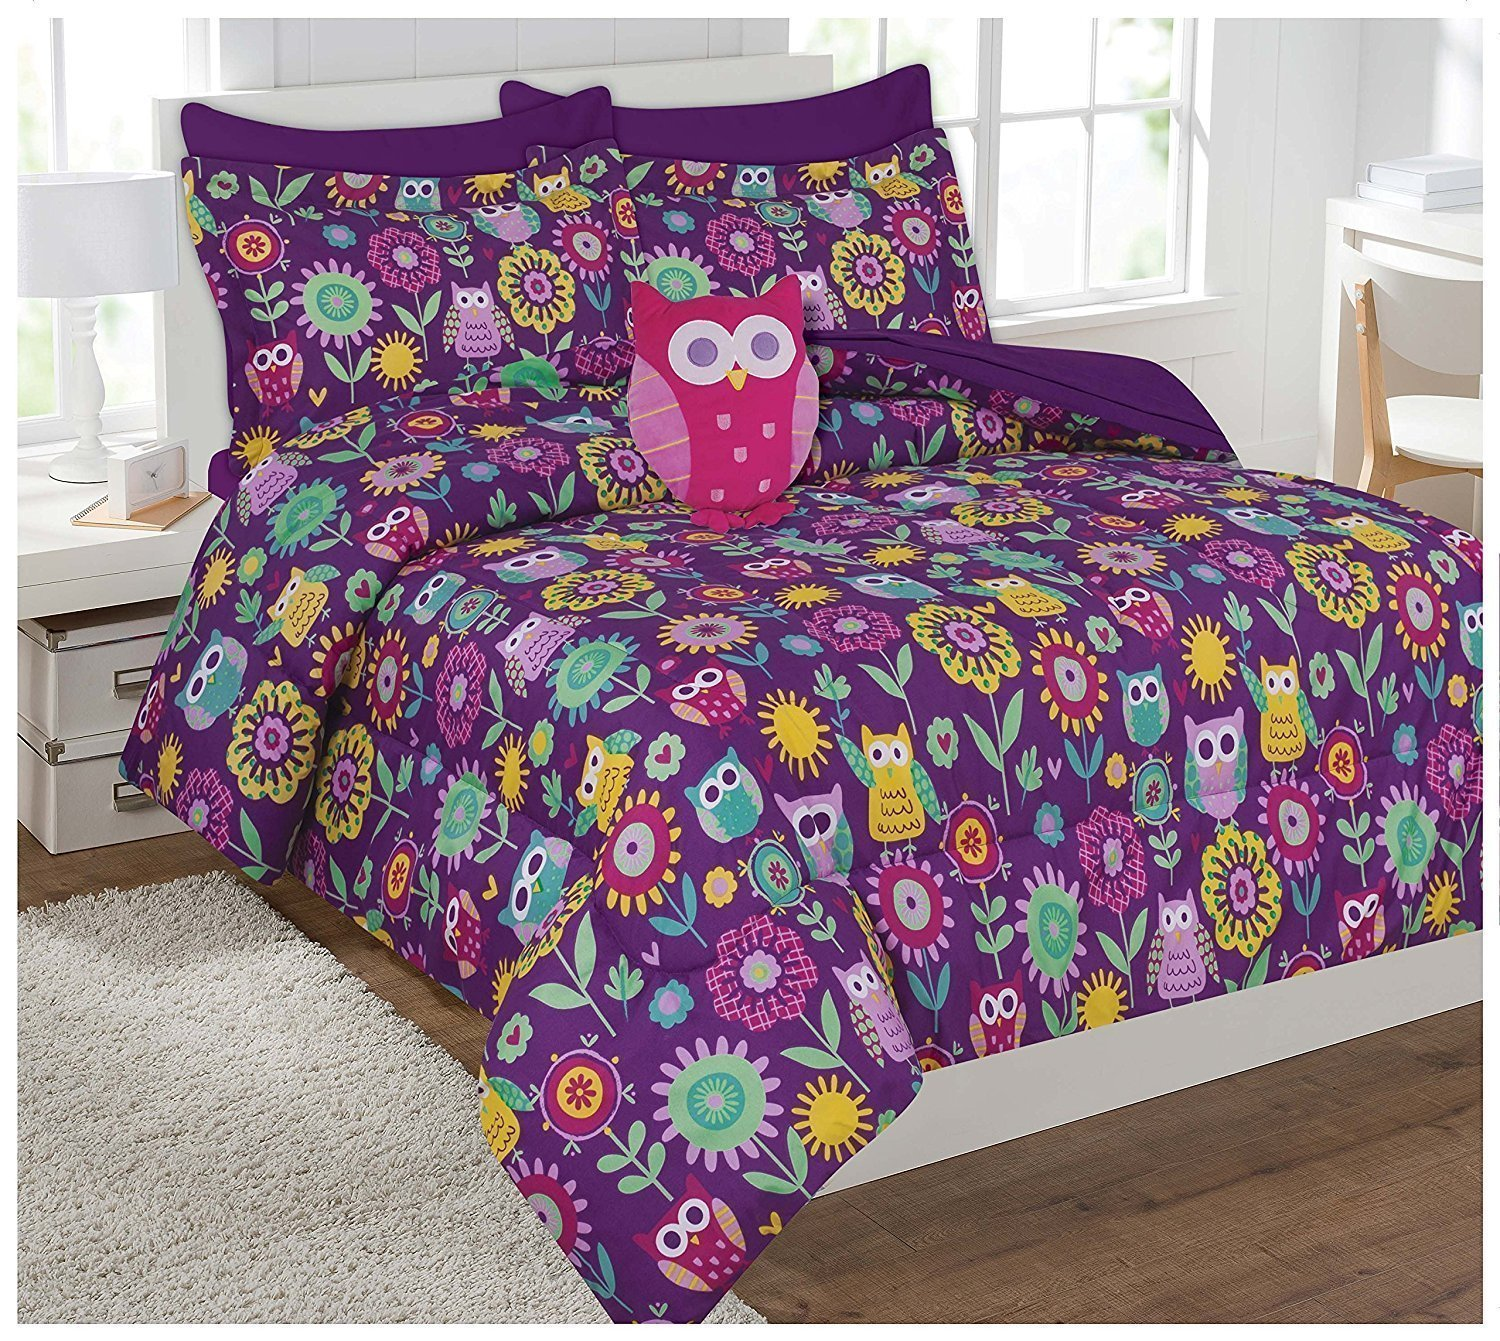 Linen Plus Full Size 8pc Comforter Set for Girls Owl Purple Yellow Teal Pink New